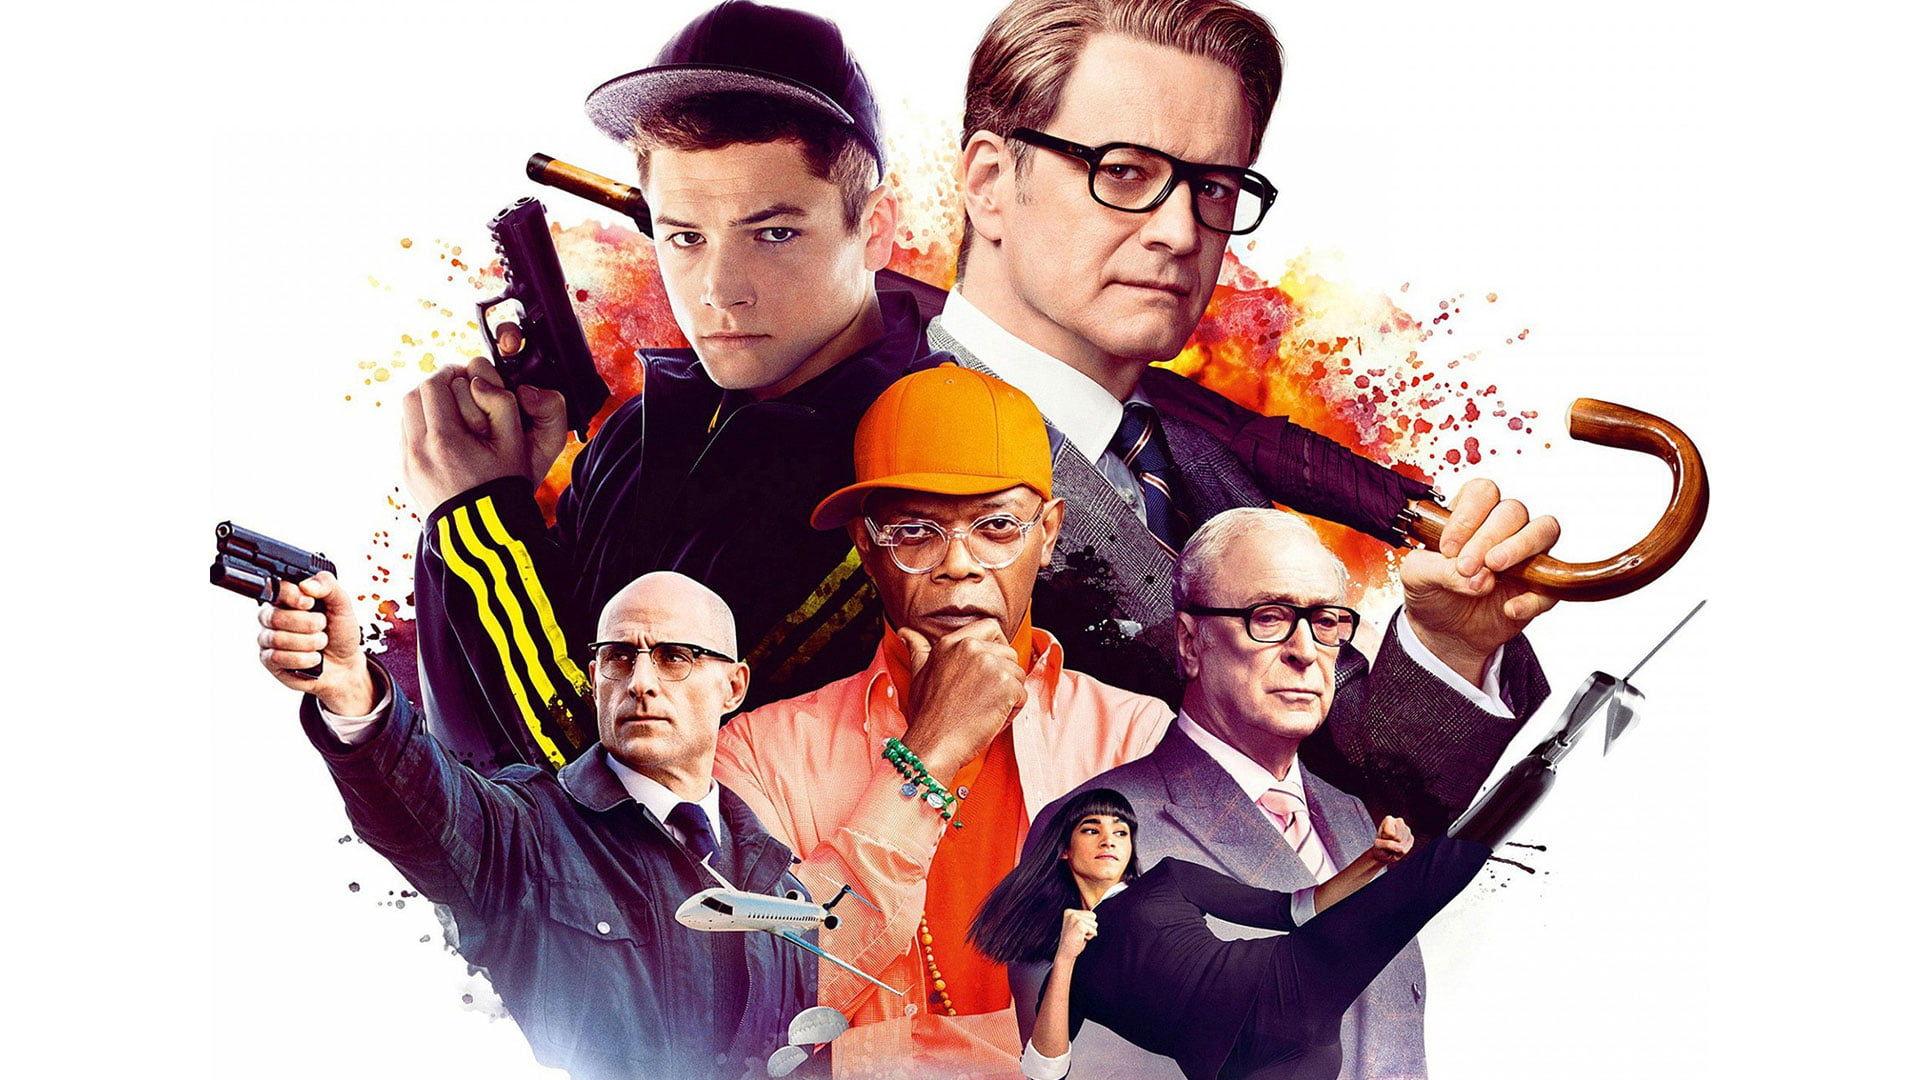 Kingsman: Таємна служба / Kingsman: The Secret Service (2014)